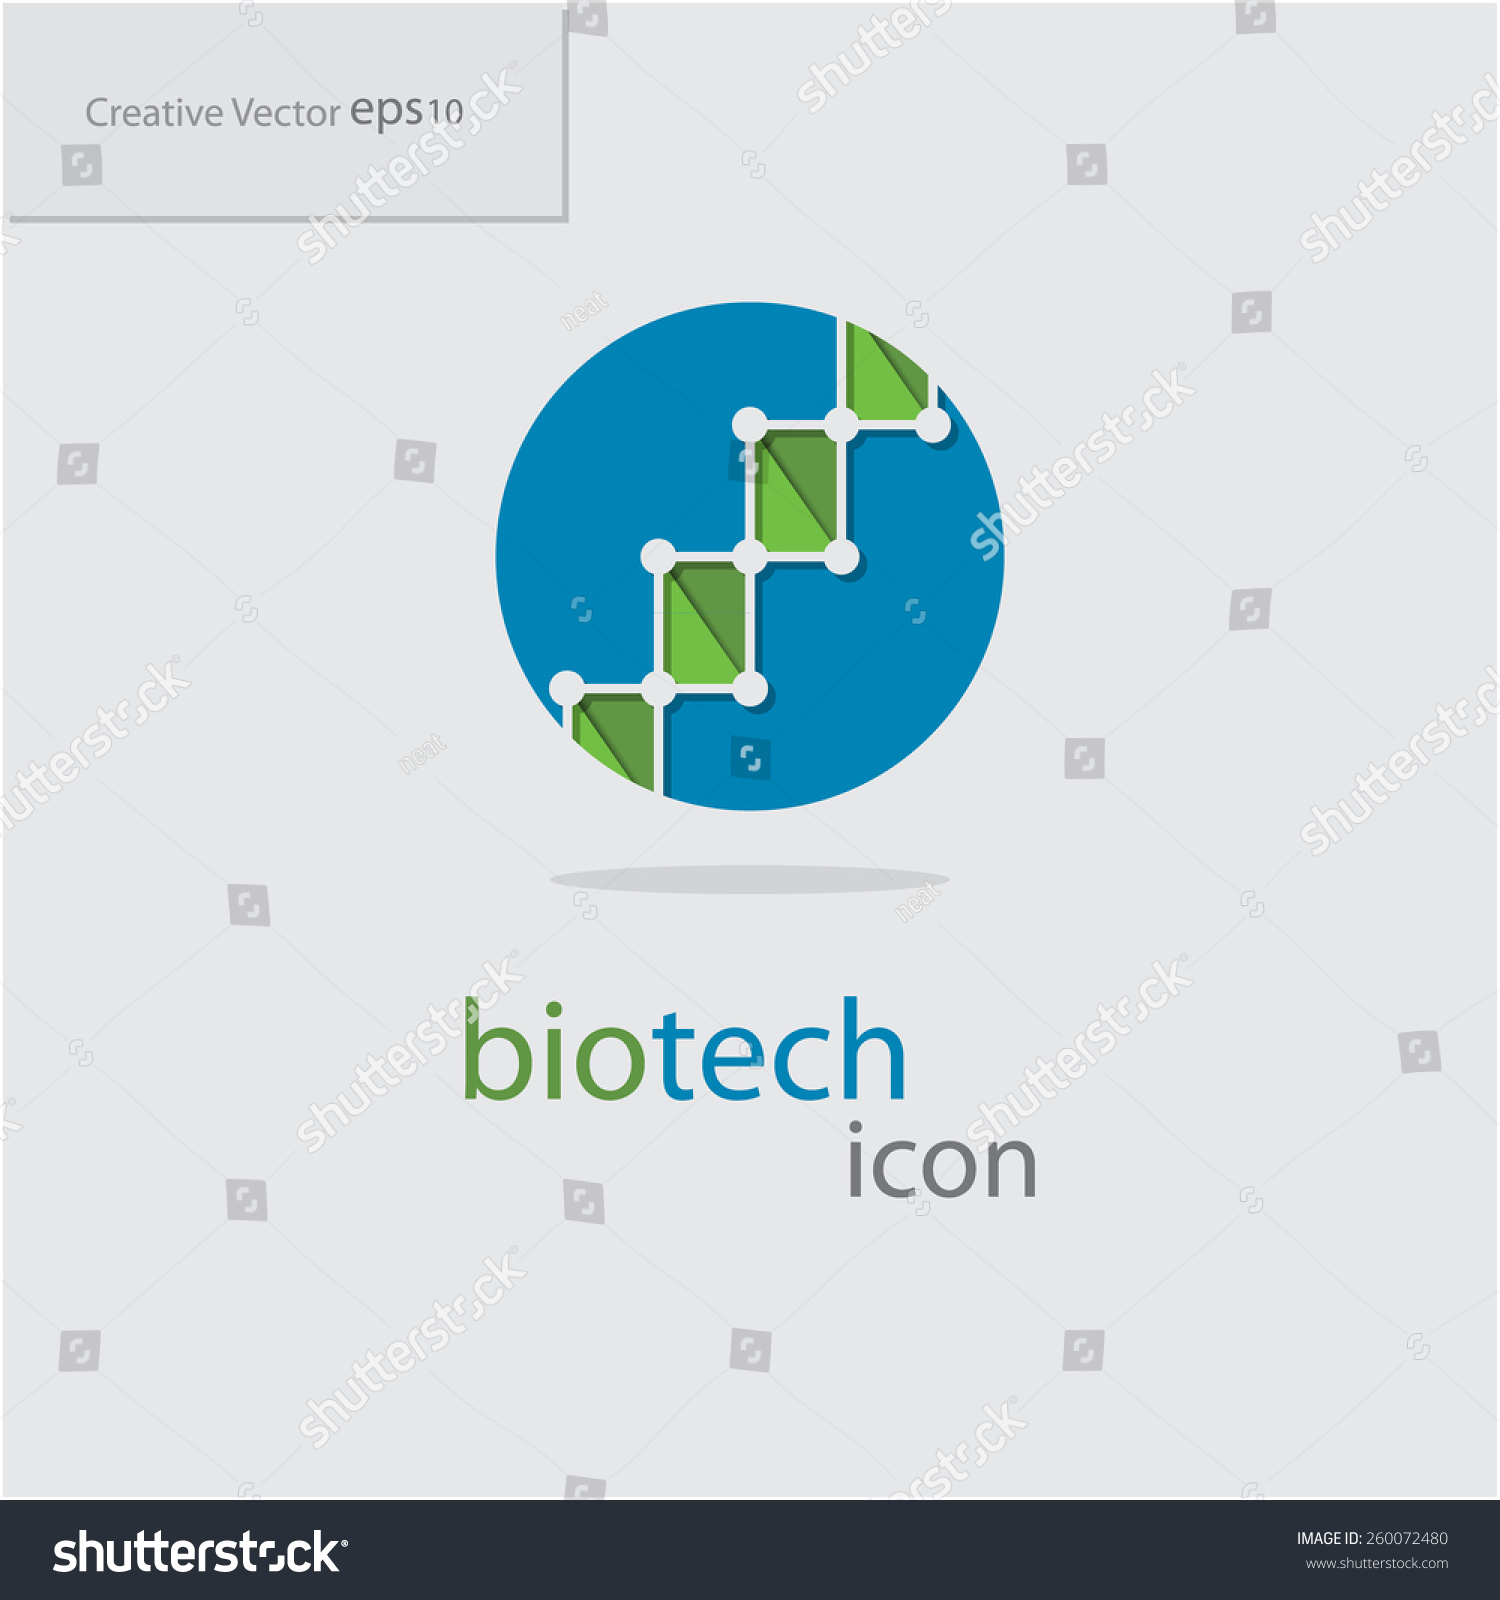 What is a vector biotechnology